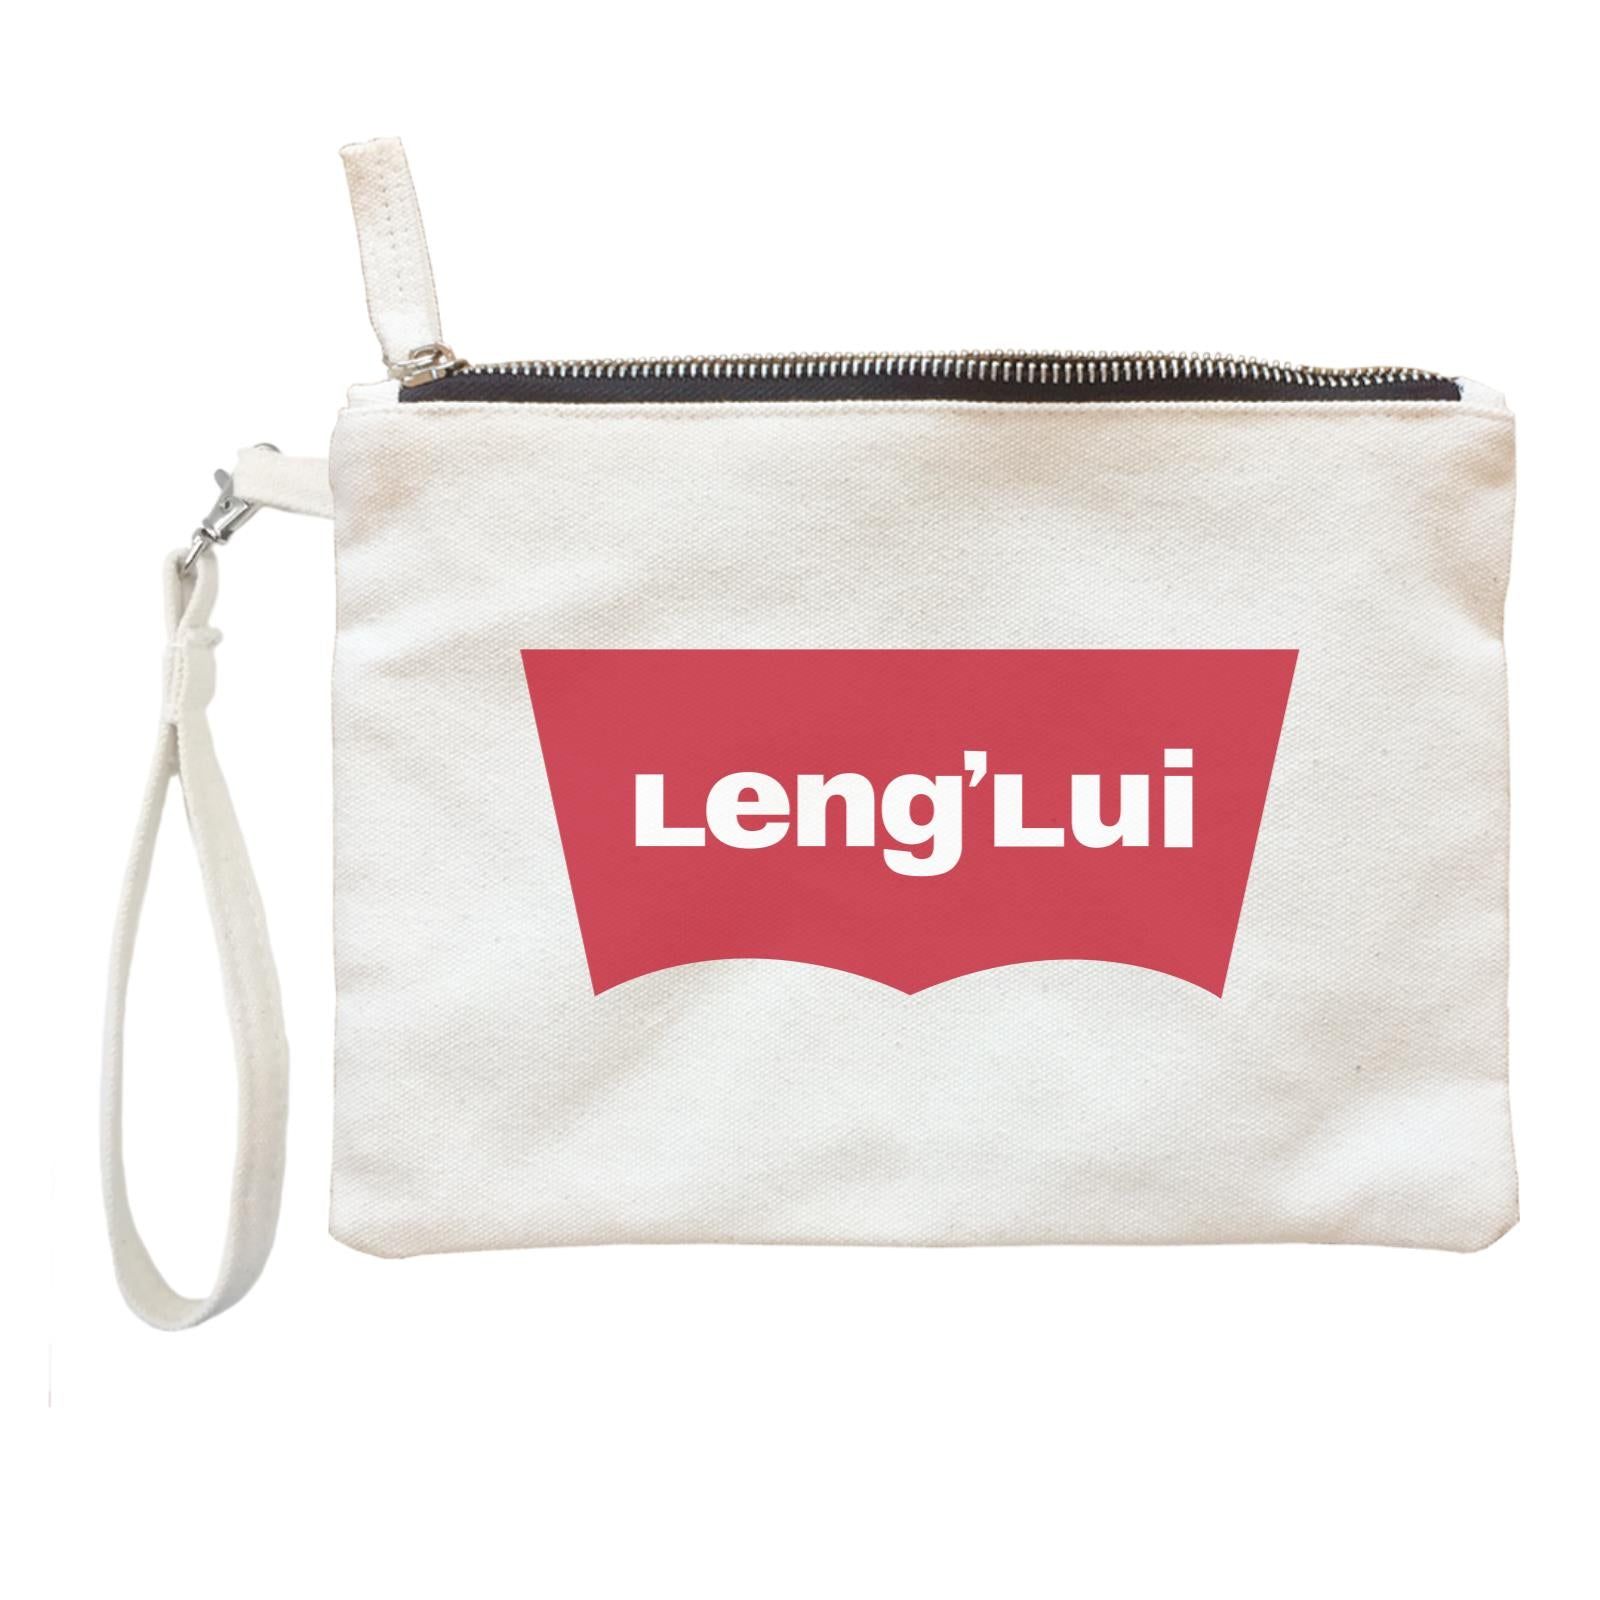 Slang Statement Lenglui Accessories Zipper Pouch with Handle